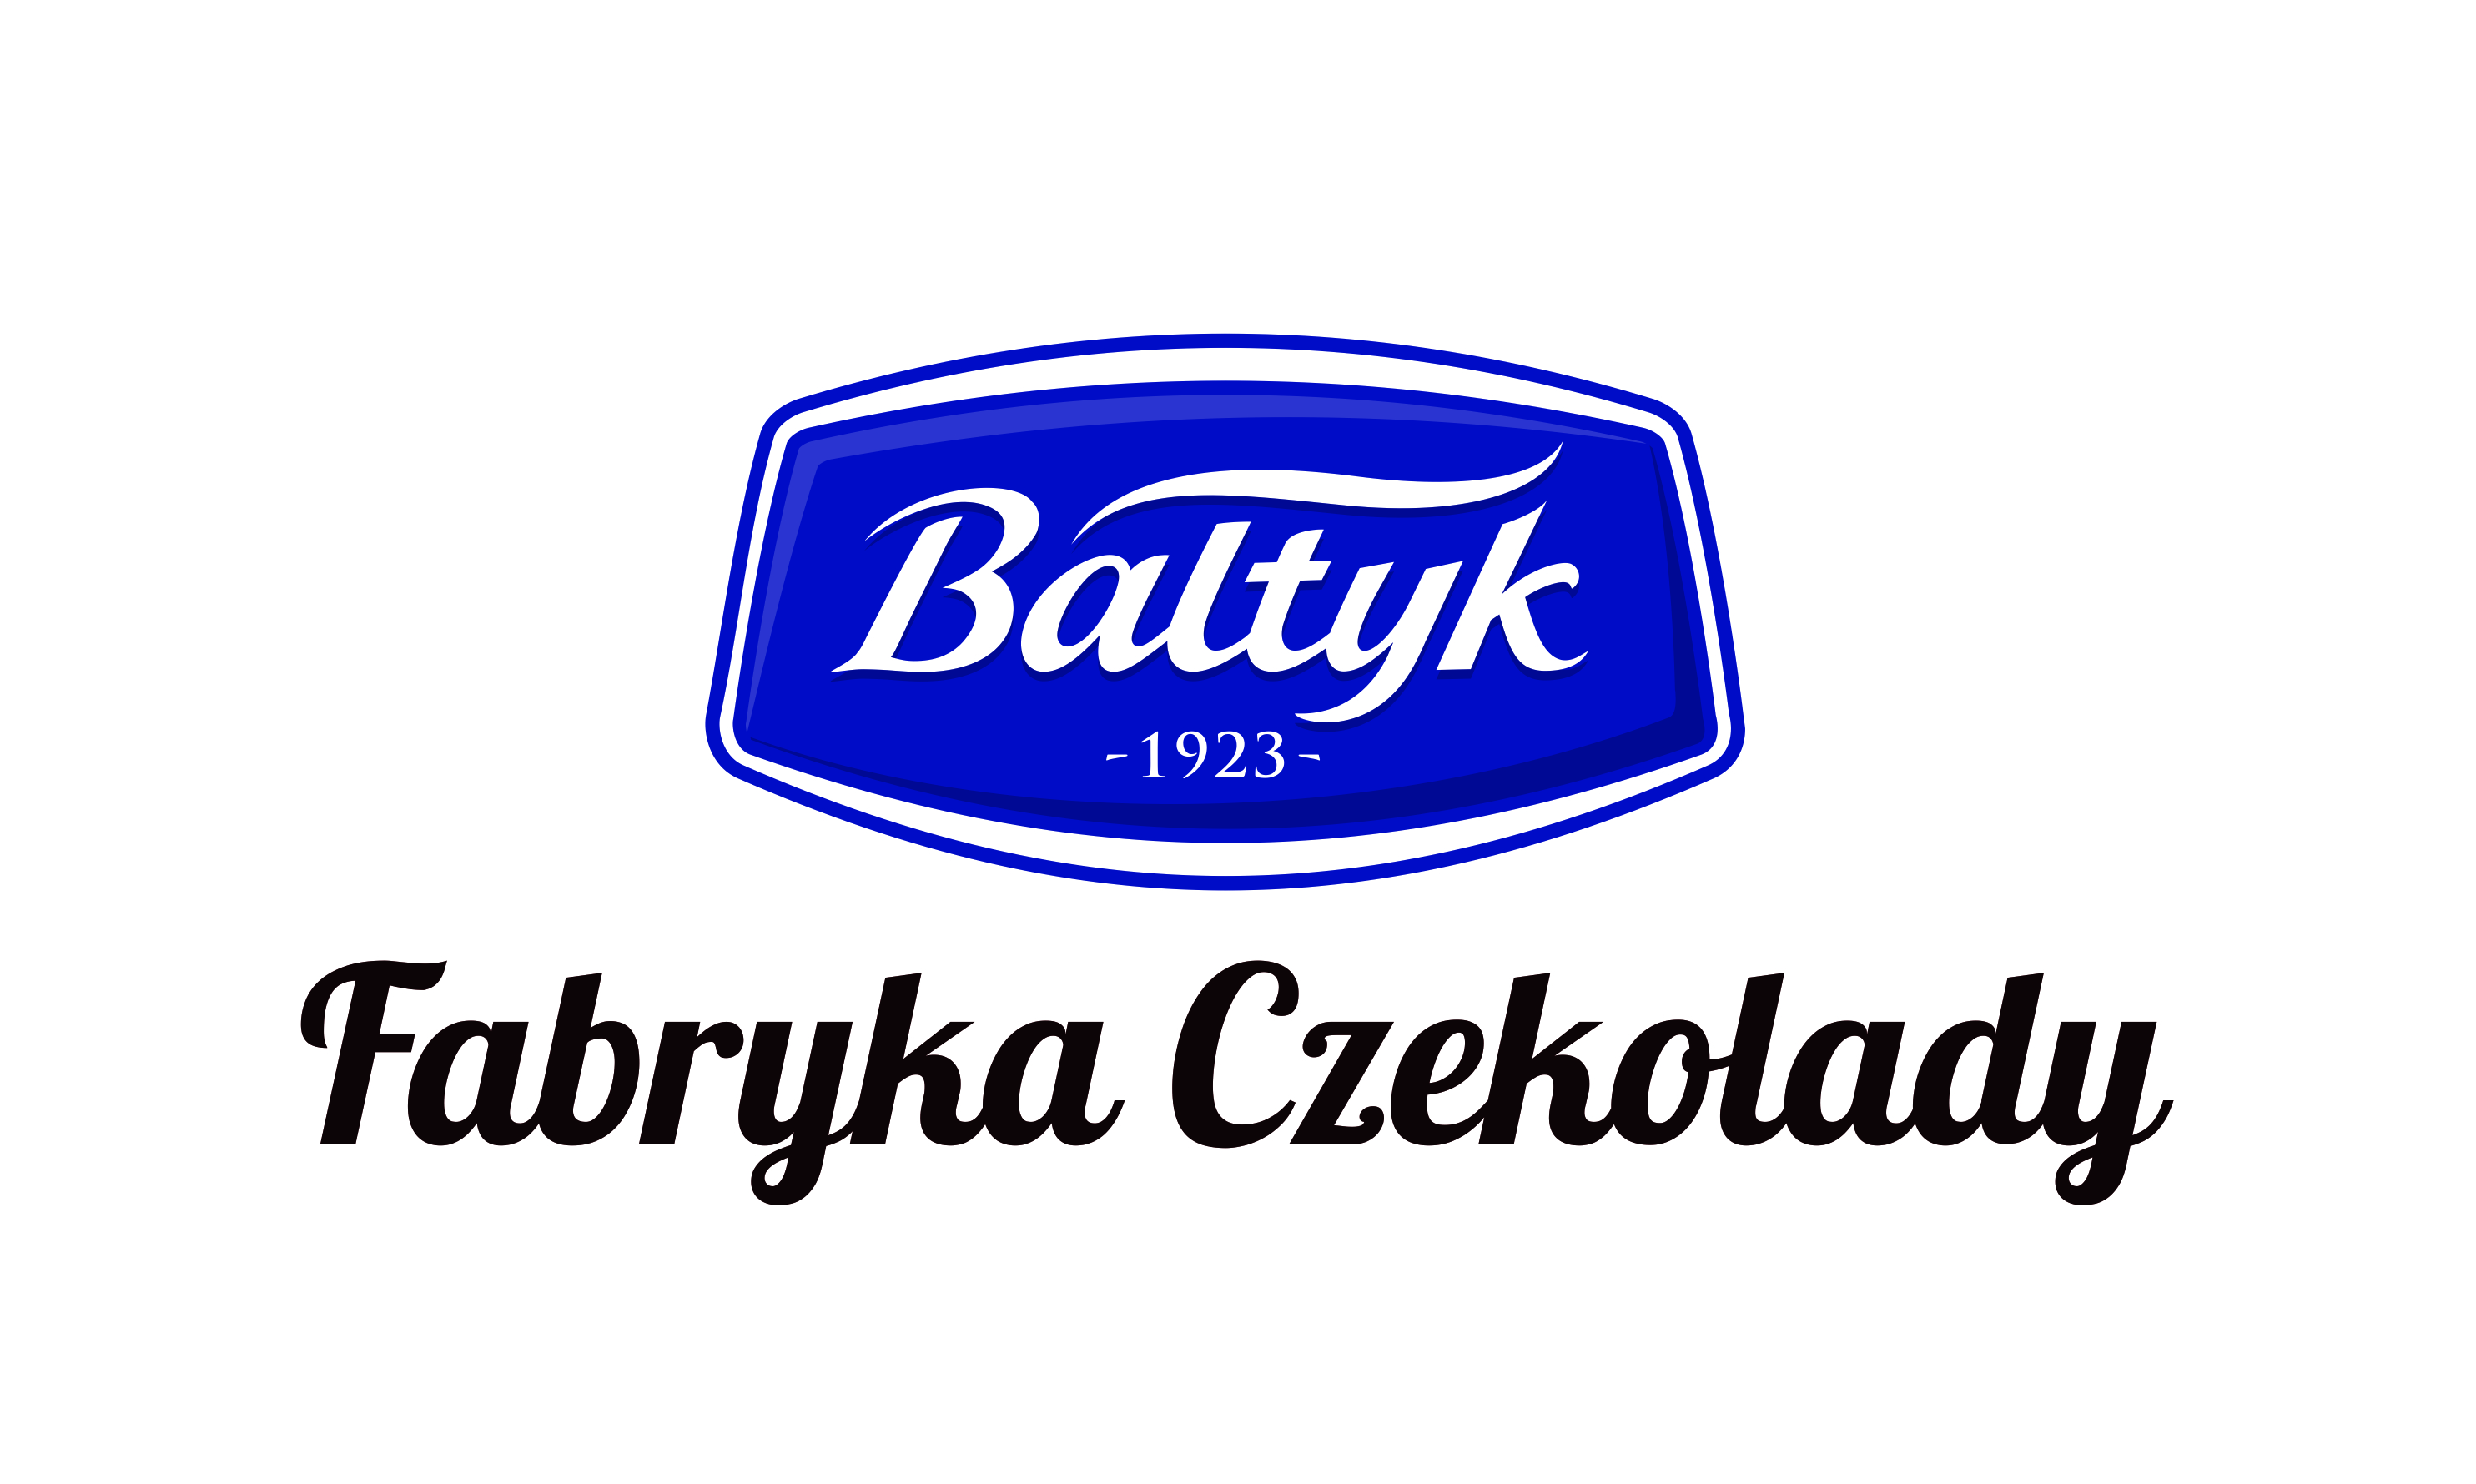 Bałtyk Chocolate Factory